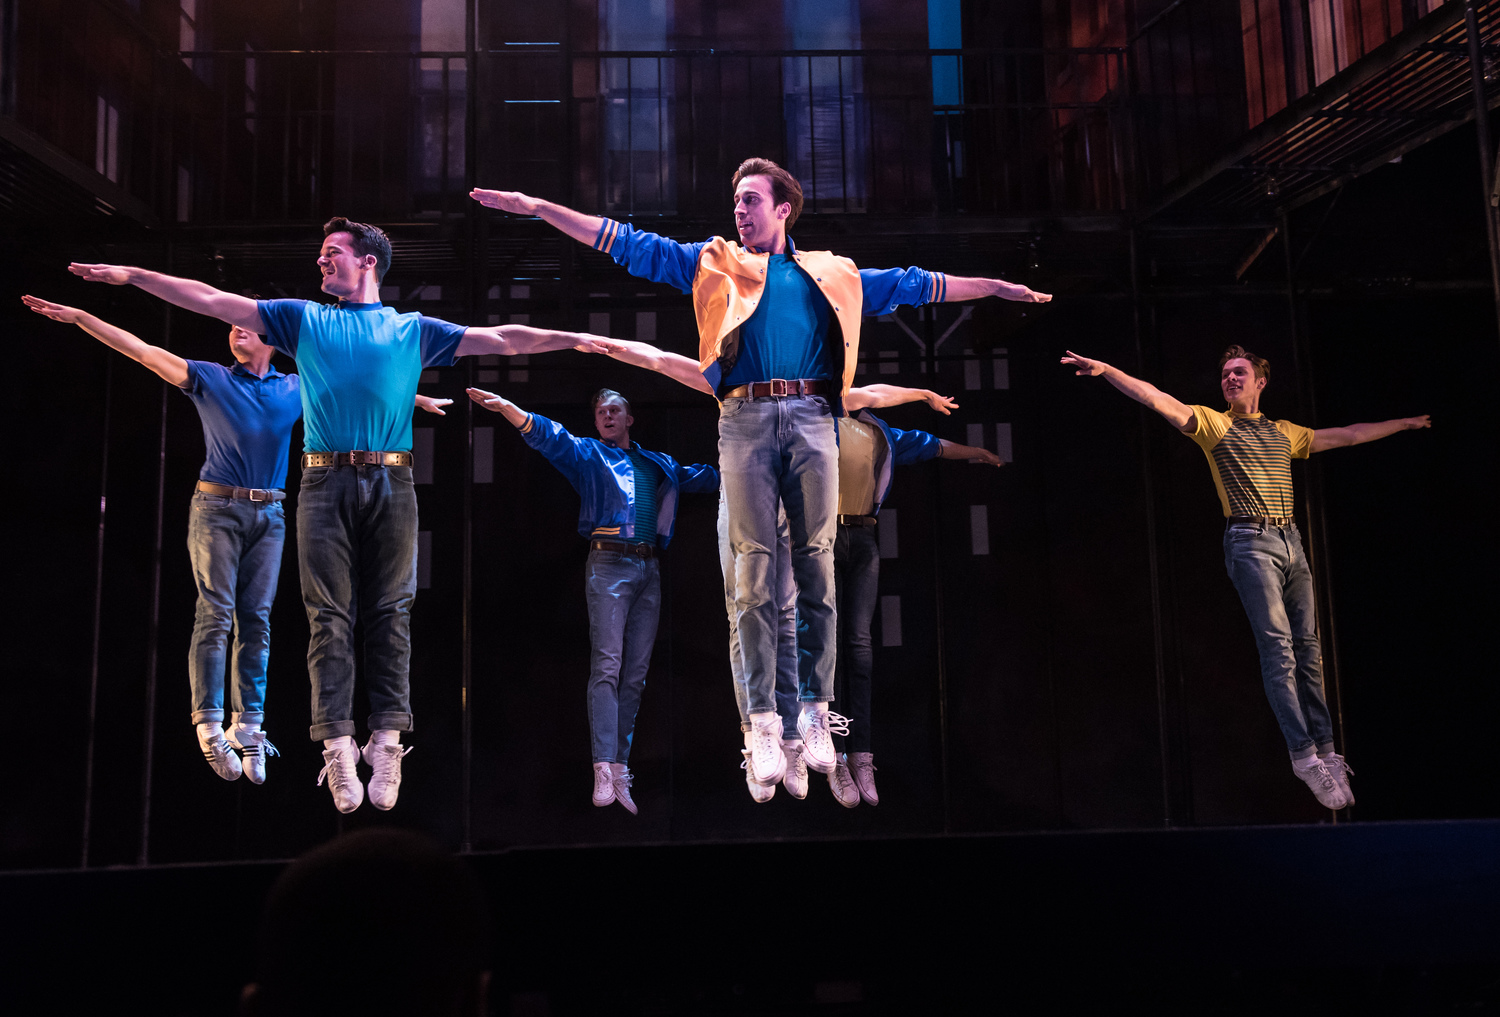 BWW Review: Virginia Repertory Theatre's WEST SIDE STORY is Richmond's Smash Hit of the Summer!